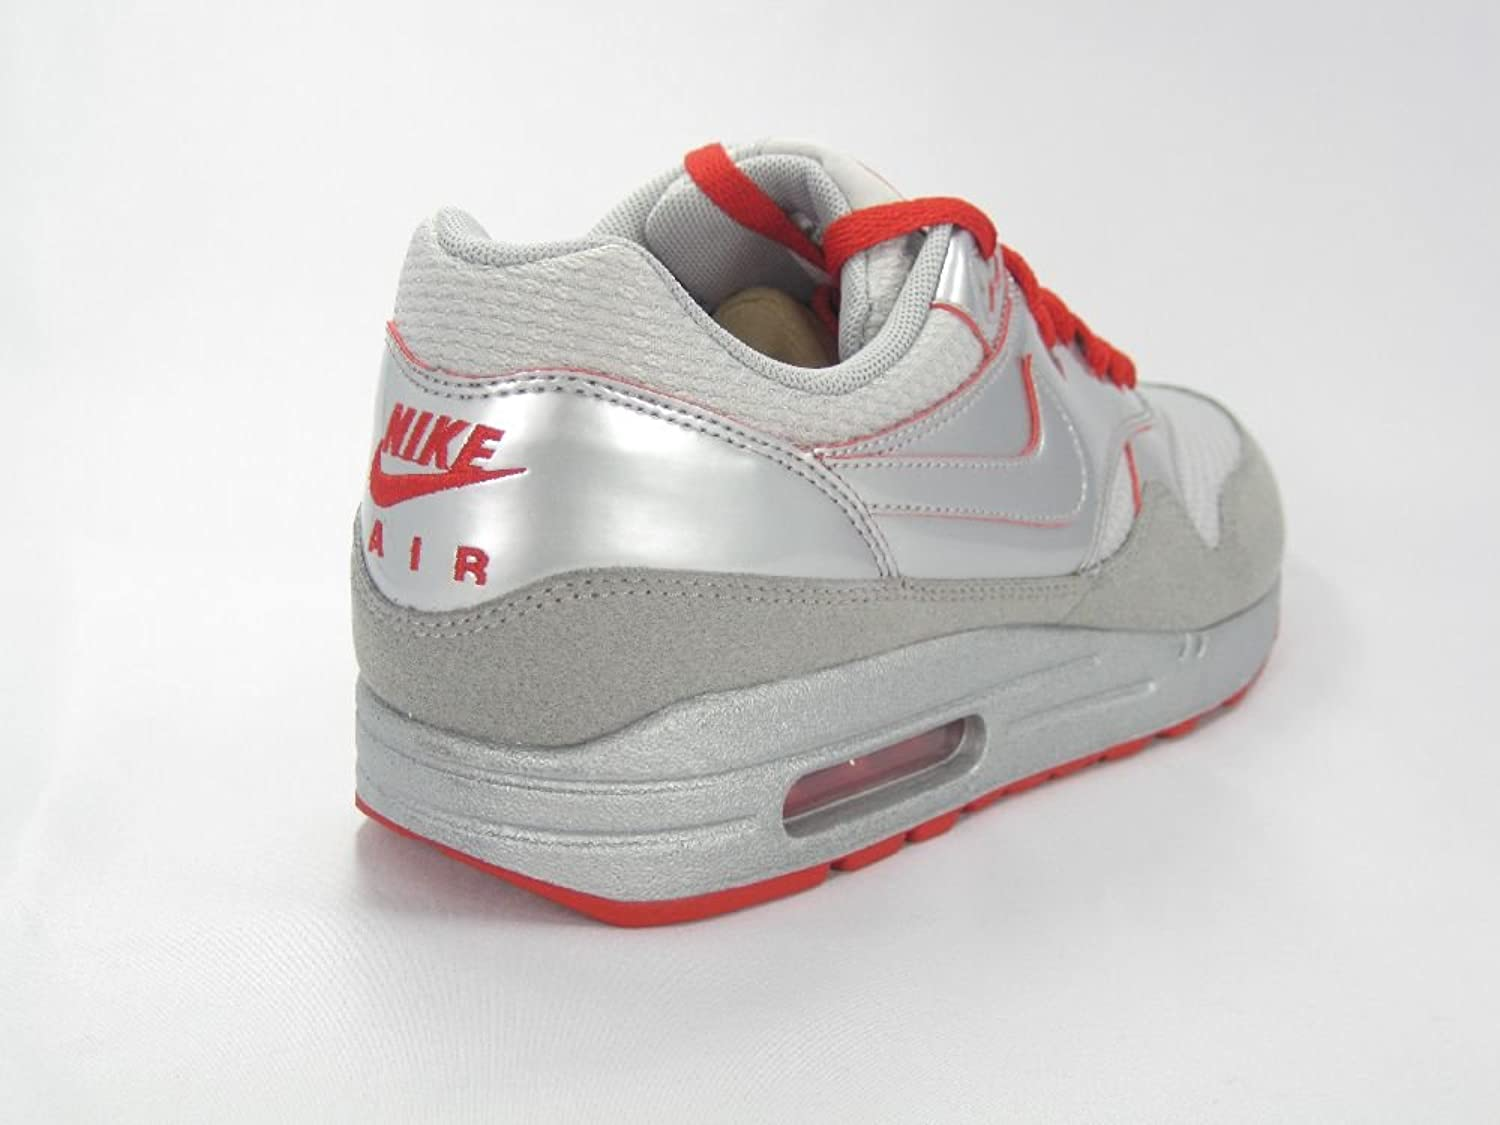 Nike Air max 1 308866008, Baskets Mode Homme - taille 45: Amazon.fr:  Chaussures et Sacs